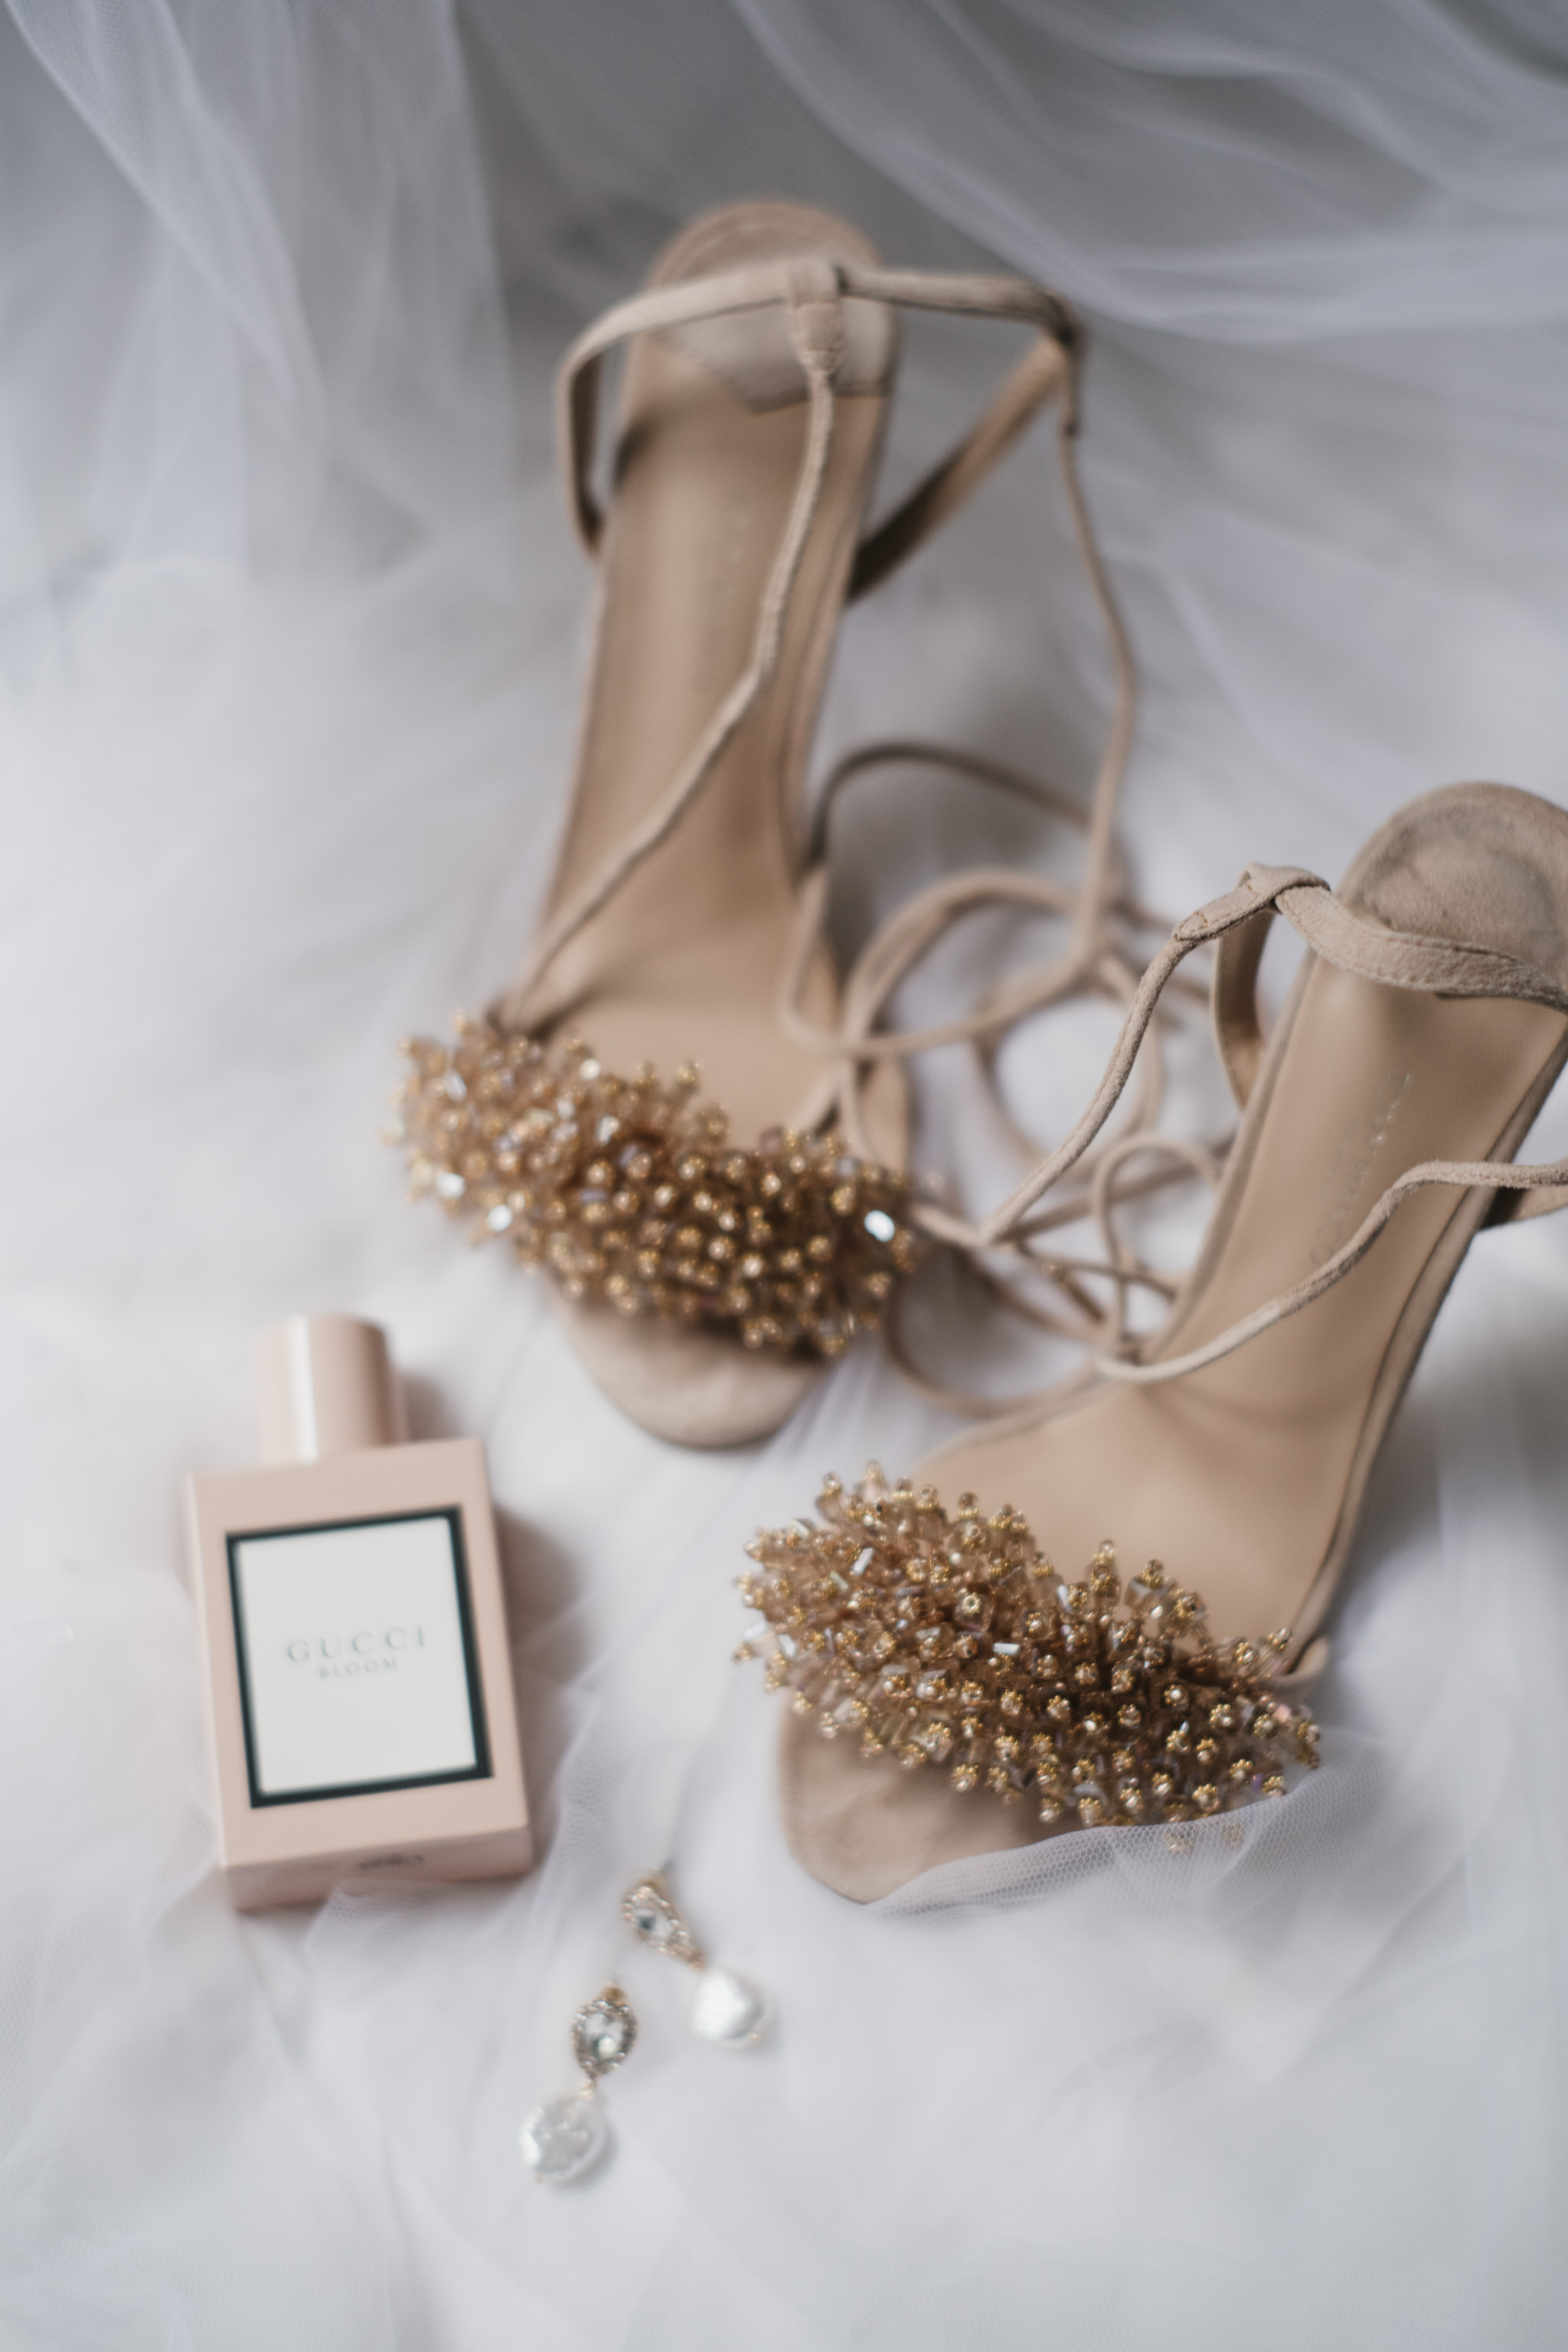 Jacquie and Jon Wedding EPHEMERAL CREATIVE bridal shoes gucci